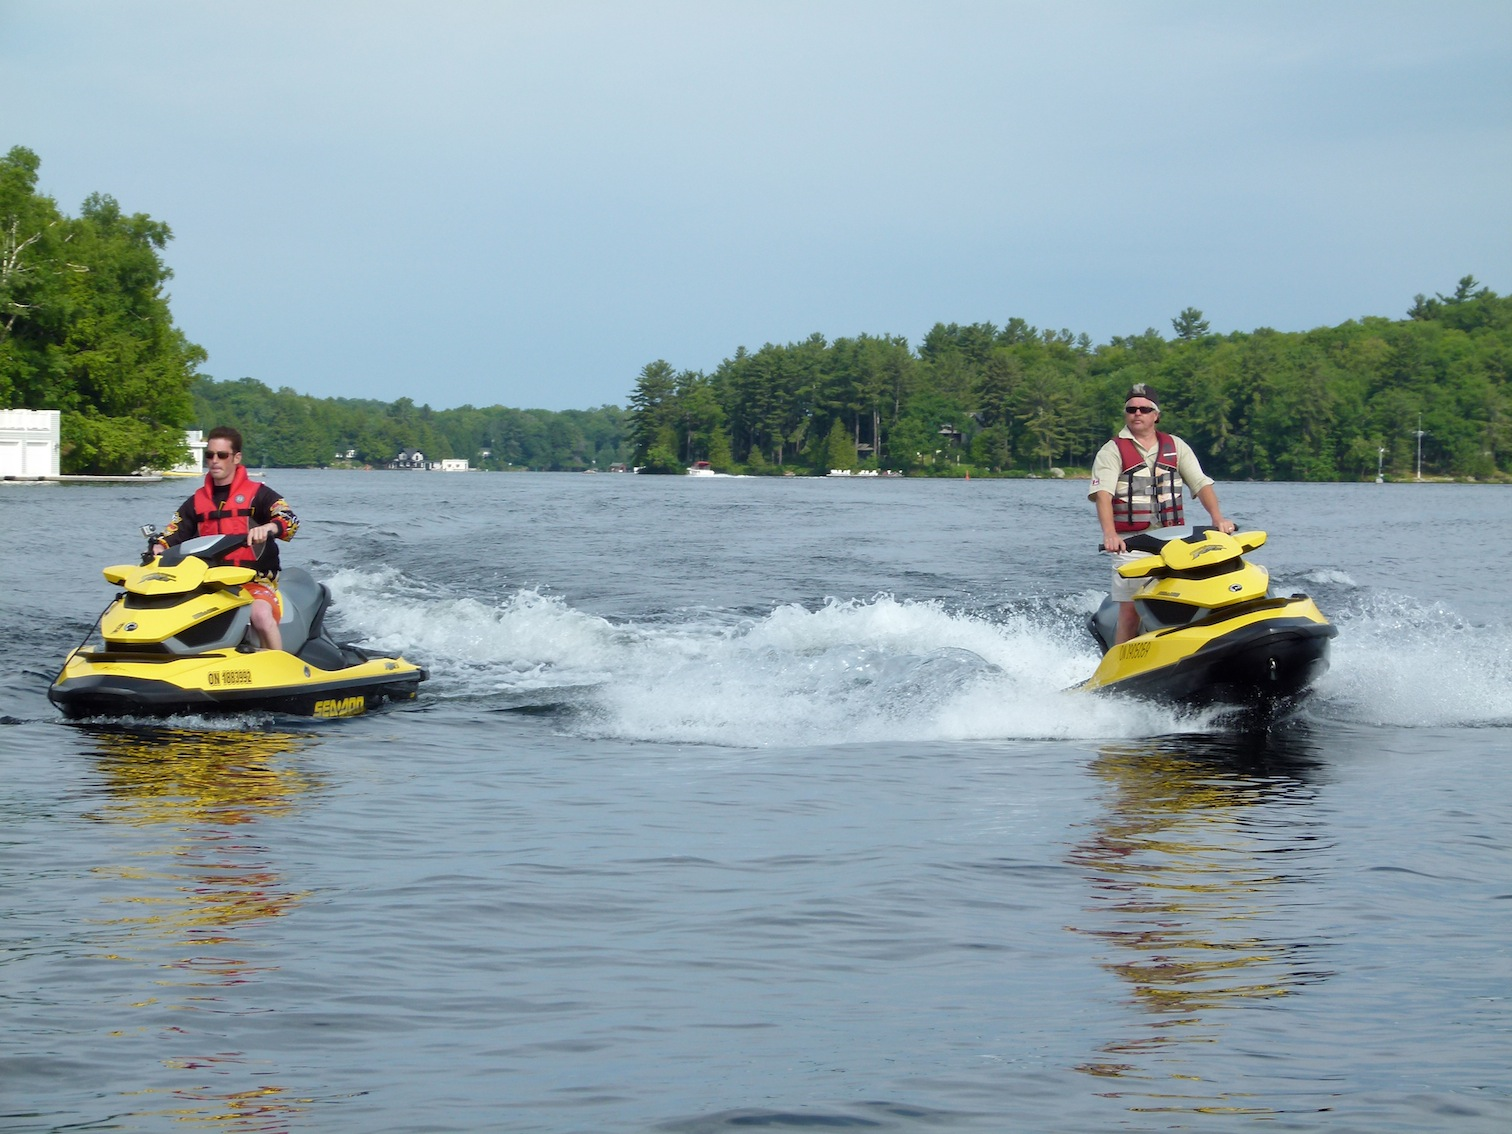 How to Use Sea Doo Cruise Control For Better Riding - Intrepid Cottager